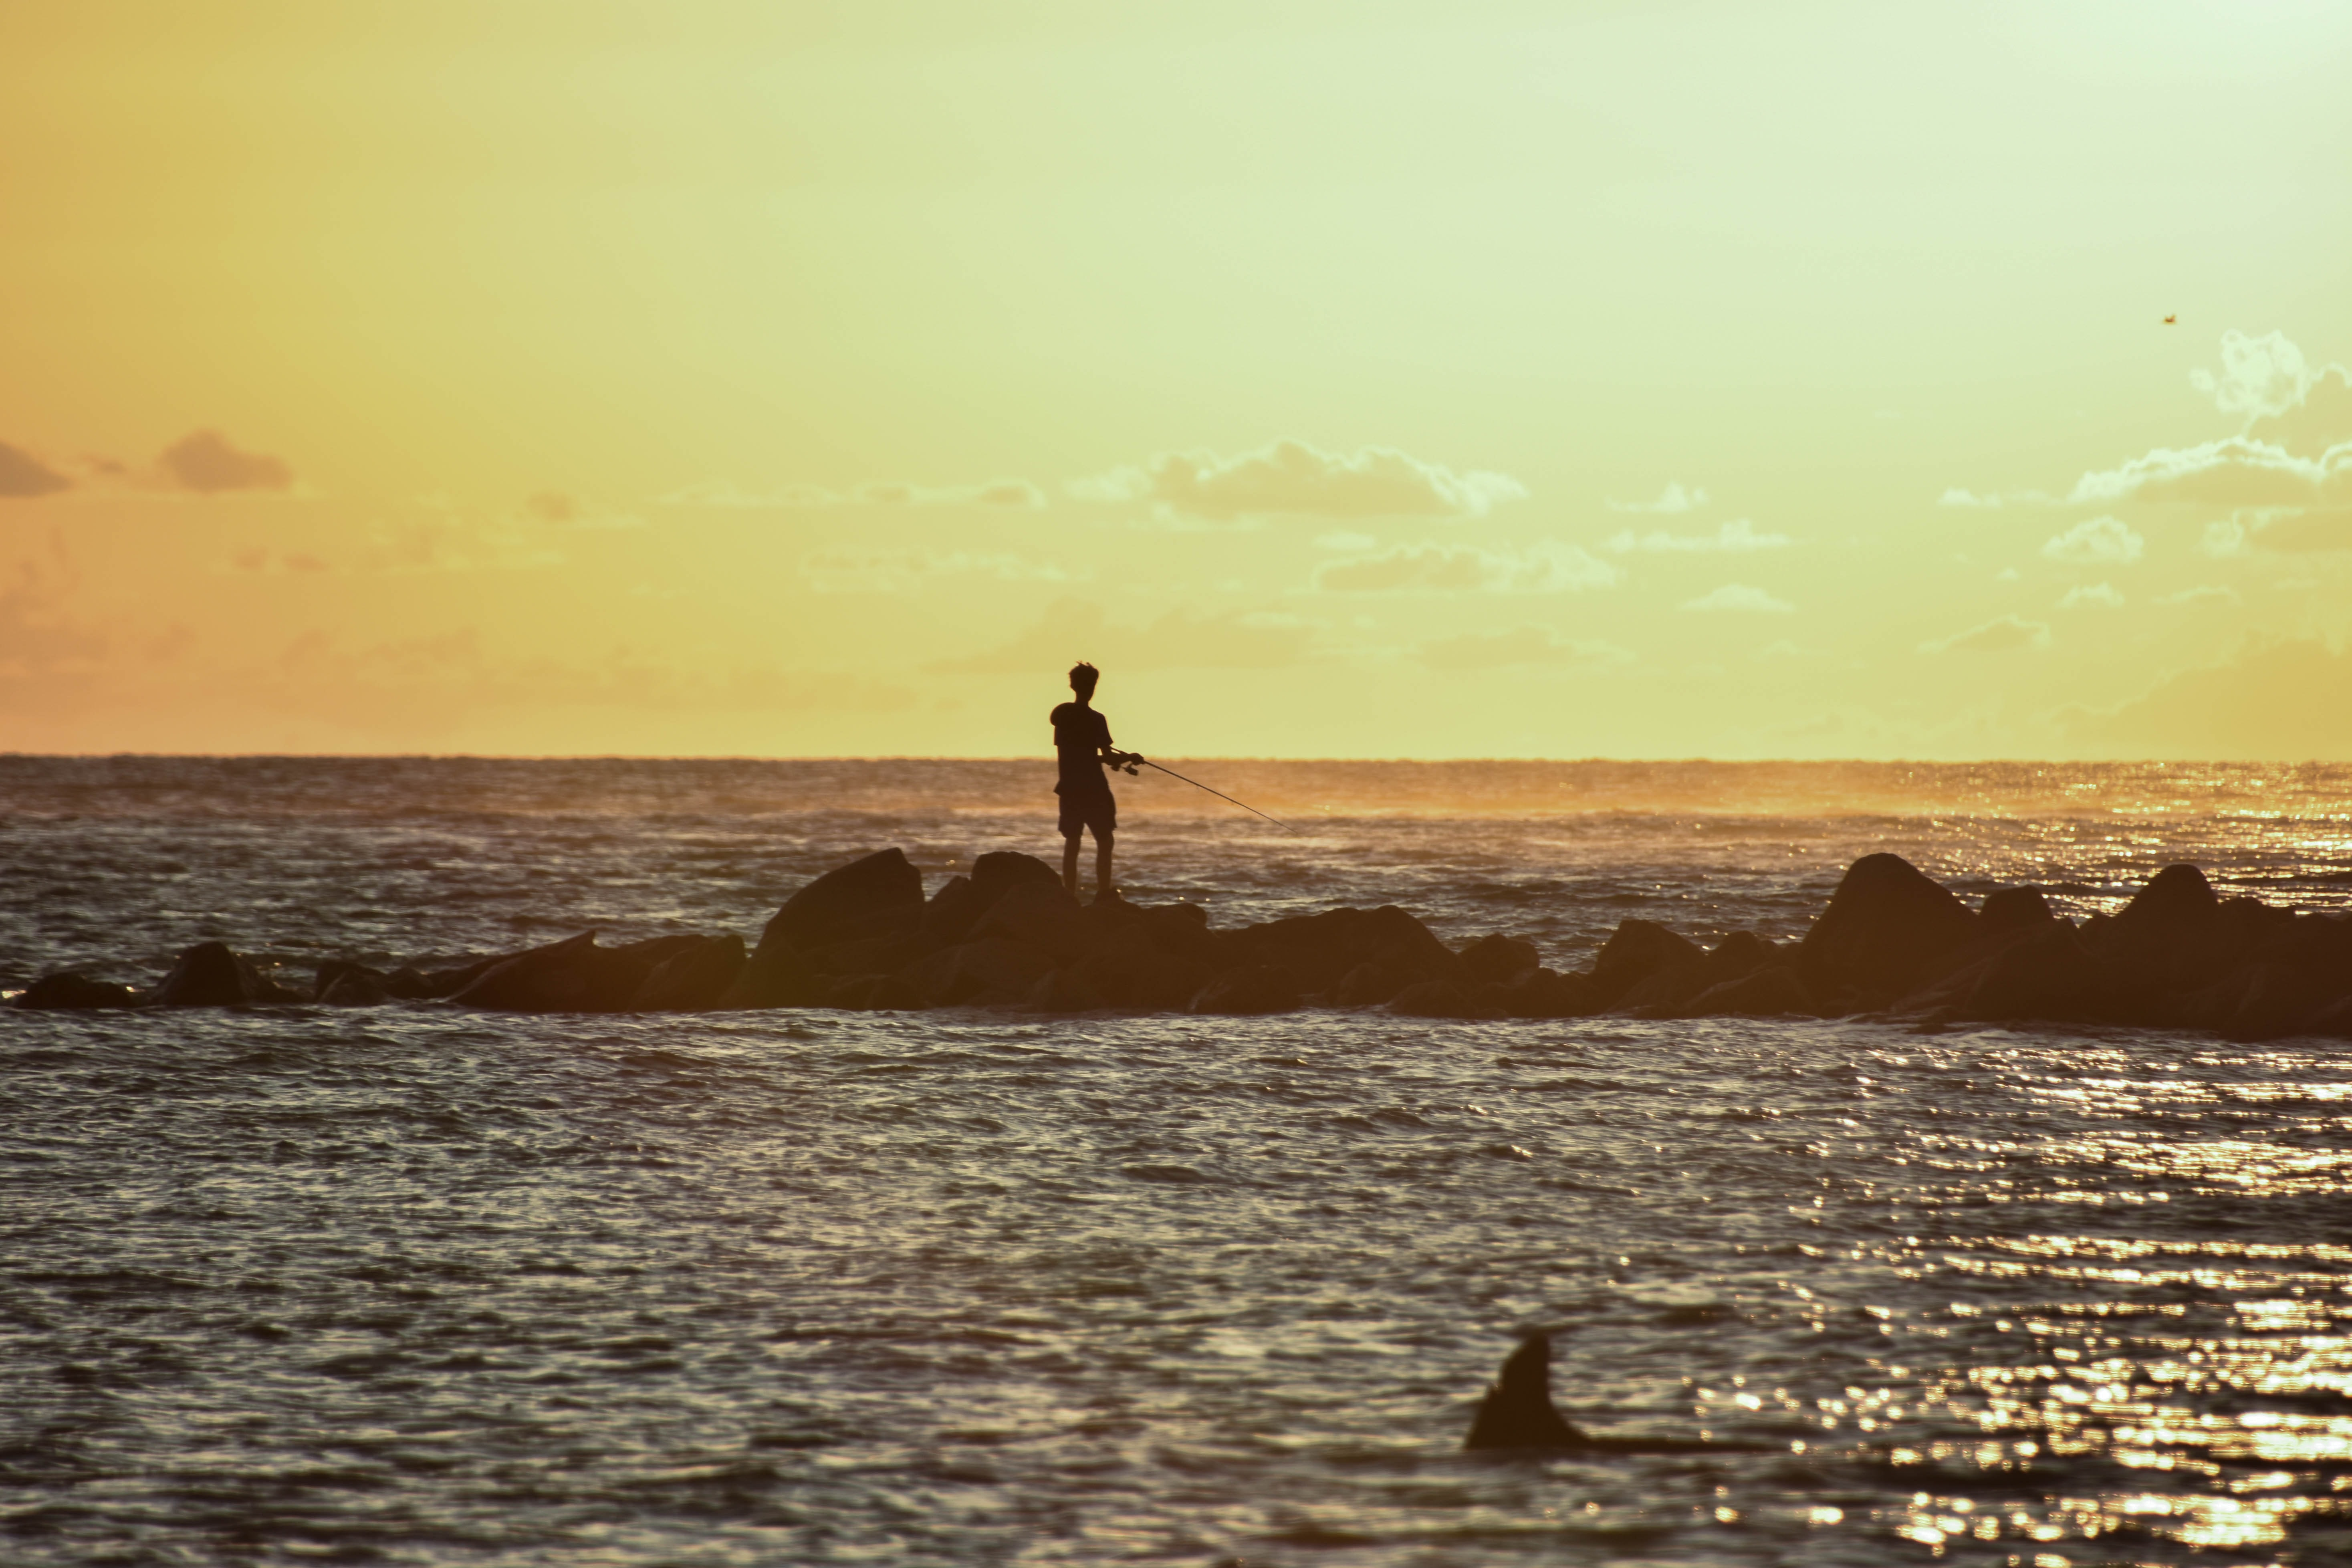 silhouette of person standing on rock formation surrounded by body of water during sunset